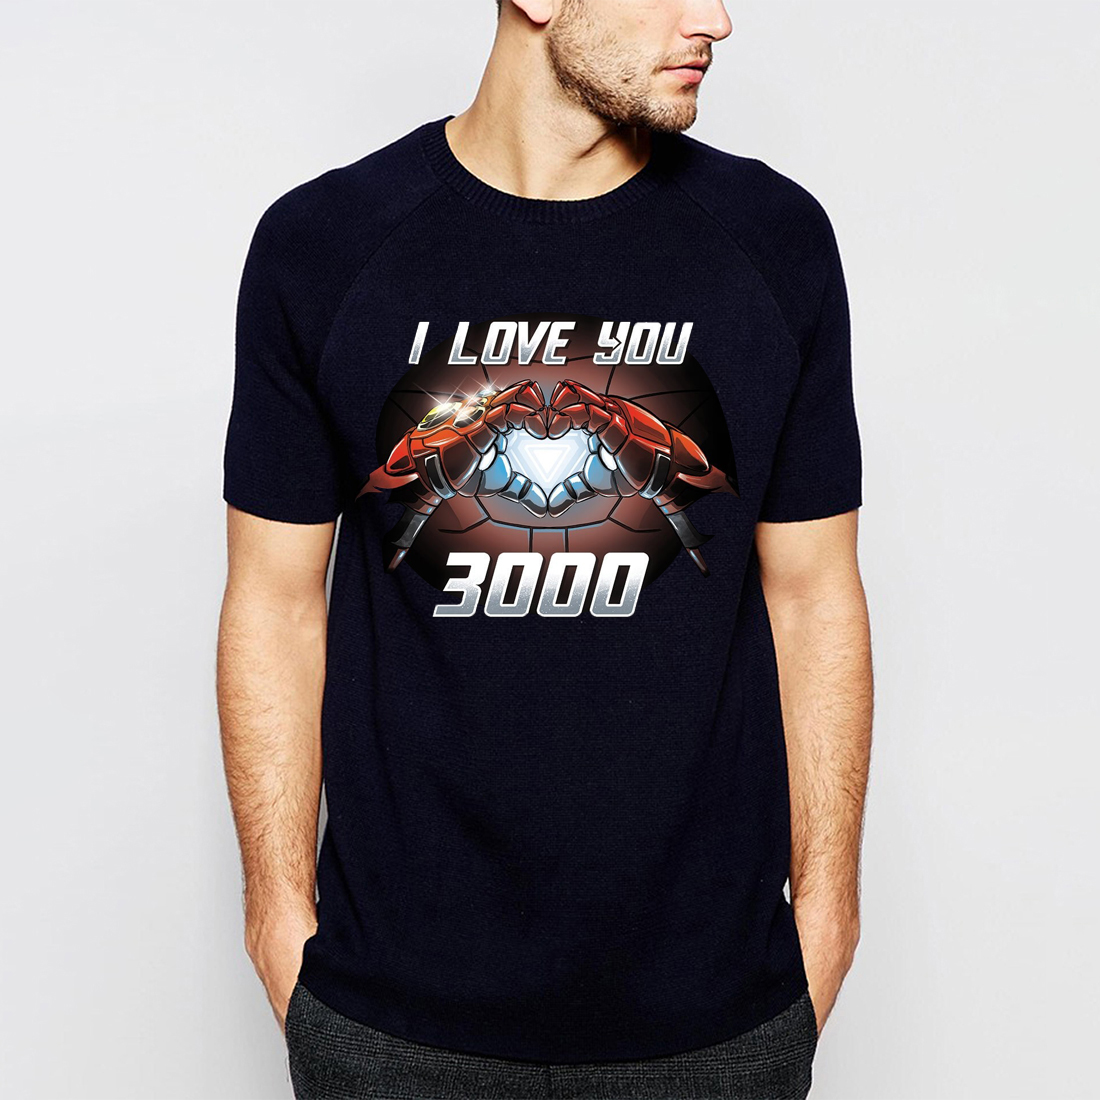 ALI shop ...  ... 33014983832 ... 2 ... Tony Stark I Love You 3000 T-Shirt Men The Avengers Iron Man Moive Shirt 2019 New Summer Casual Plus Size Tops Tees S-3XL ...